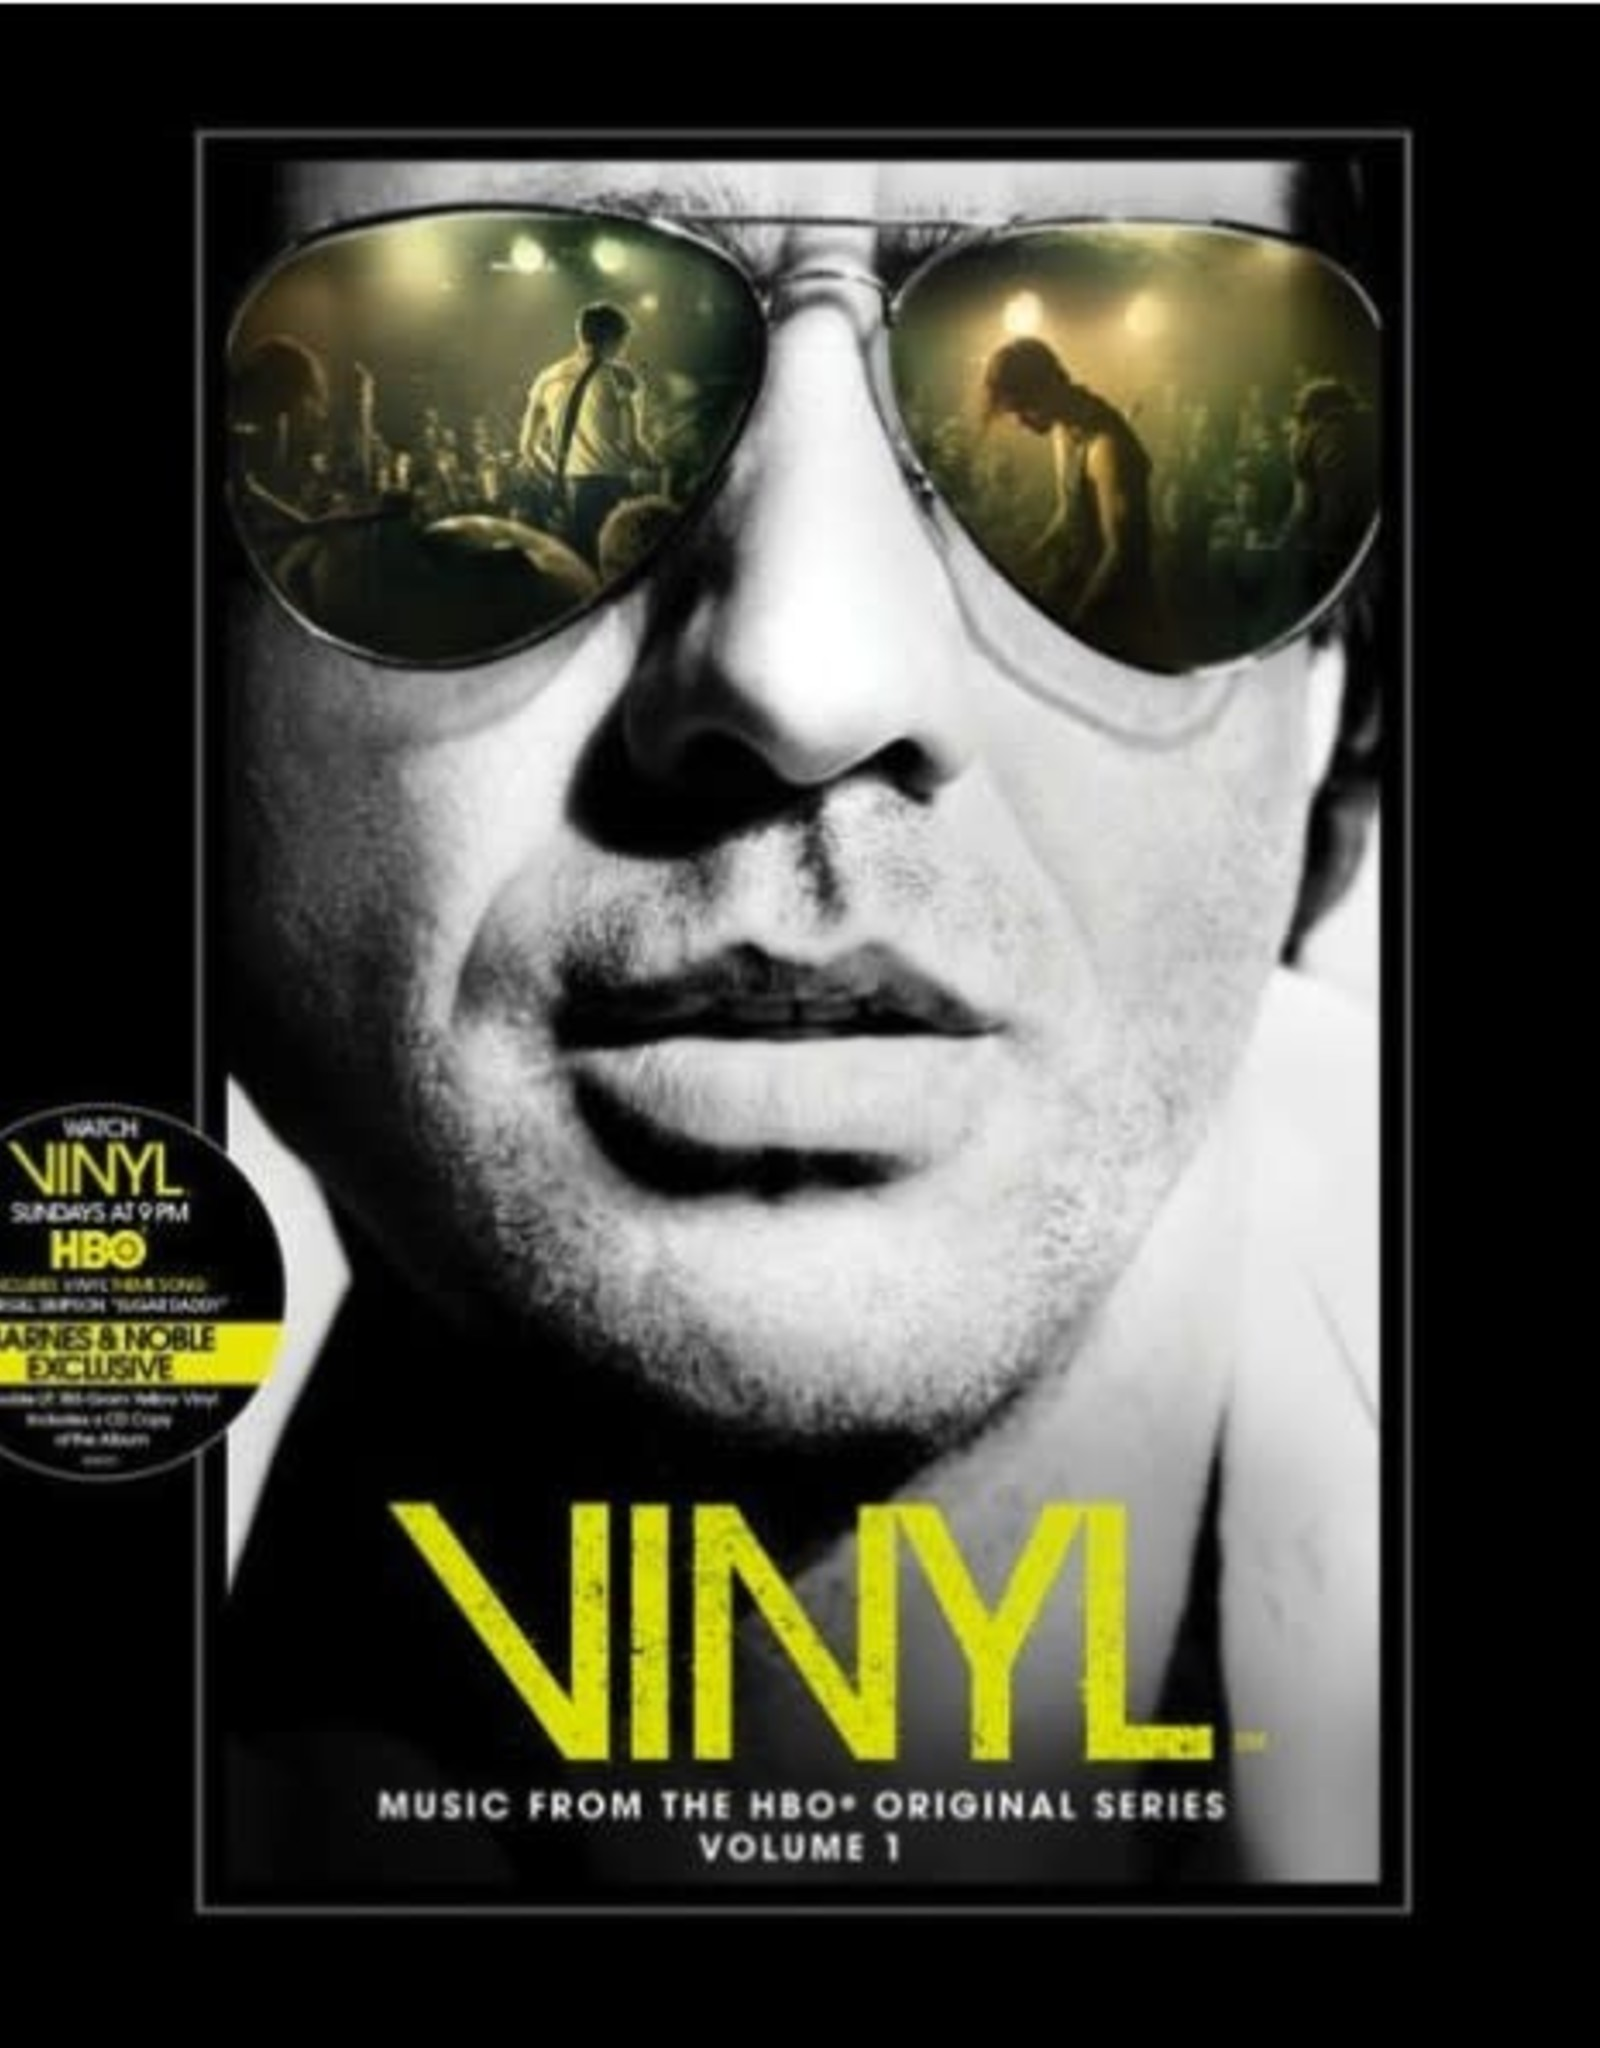 Vinyl - Music from the HBO Series